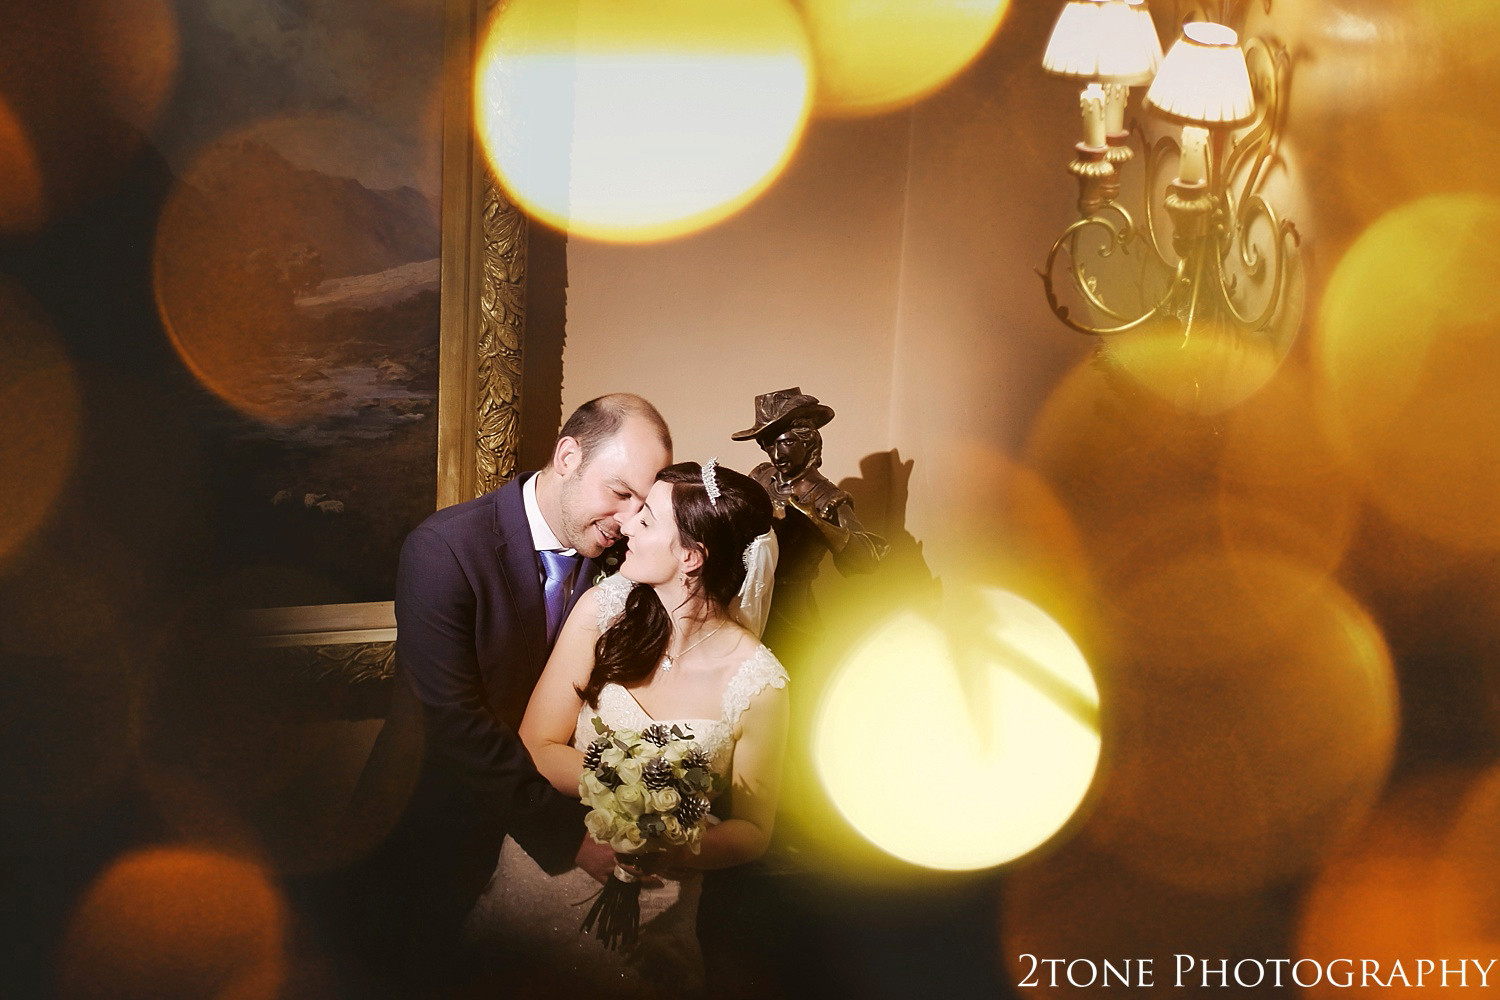 Wedding photography at Lumley Castle by Durham photographer 2tone photography www.2tonephotography.co.uk